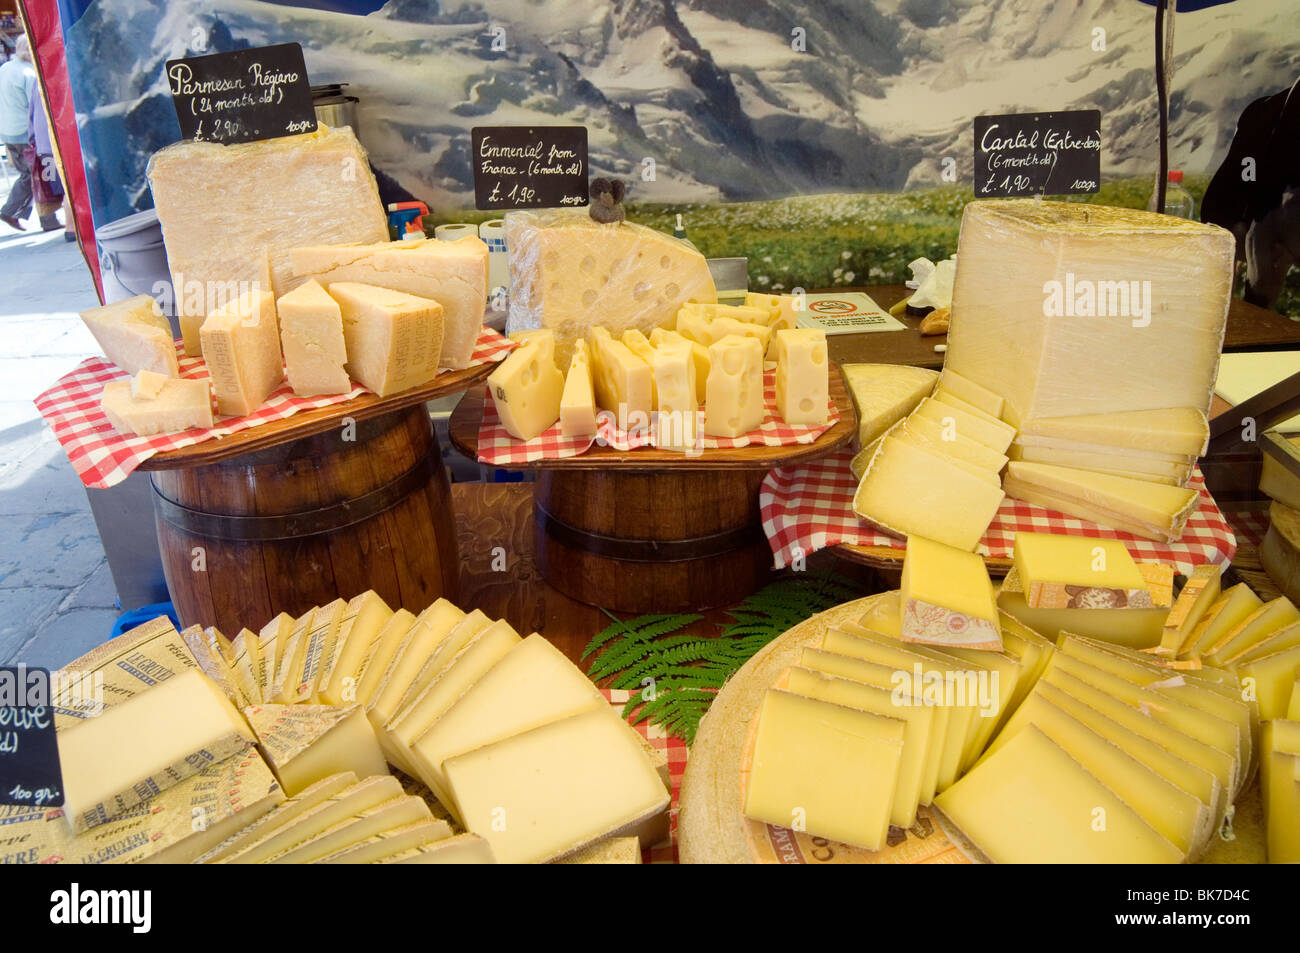 cheese cheesey fromage stall shop stall shops stalls hard dairy product products produce rural milk strong smell - Stock Image